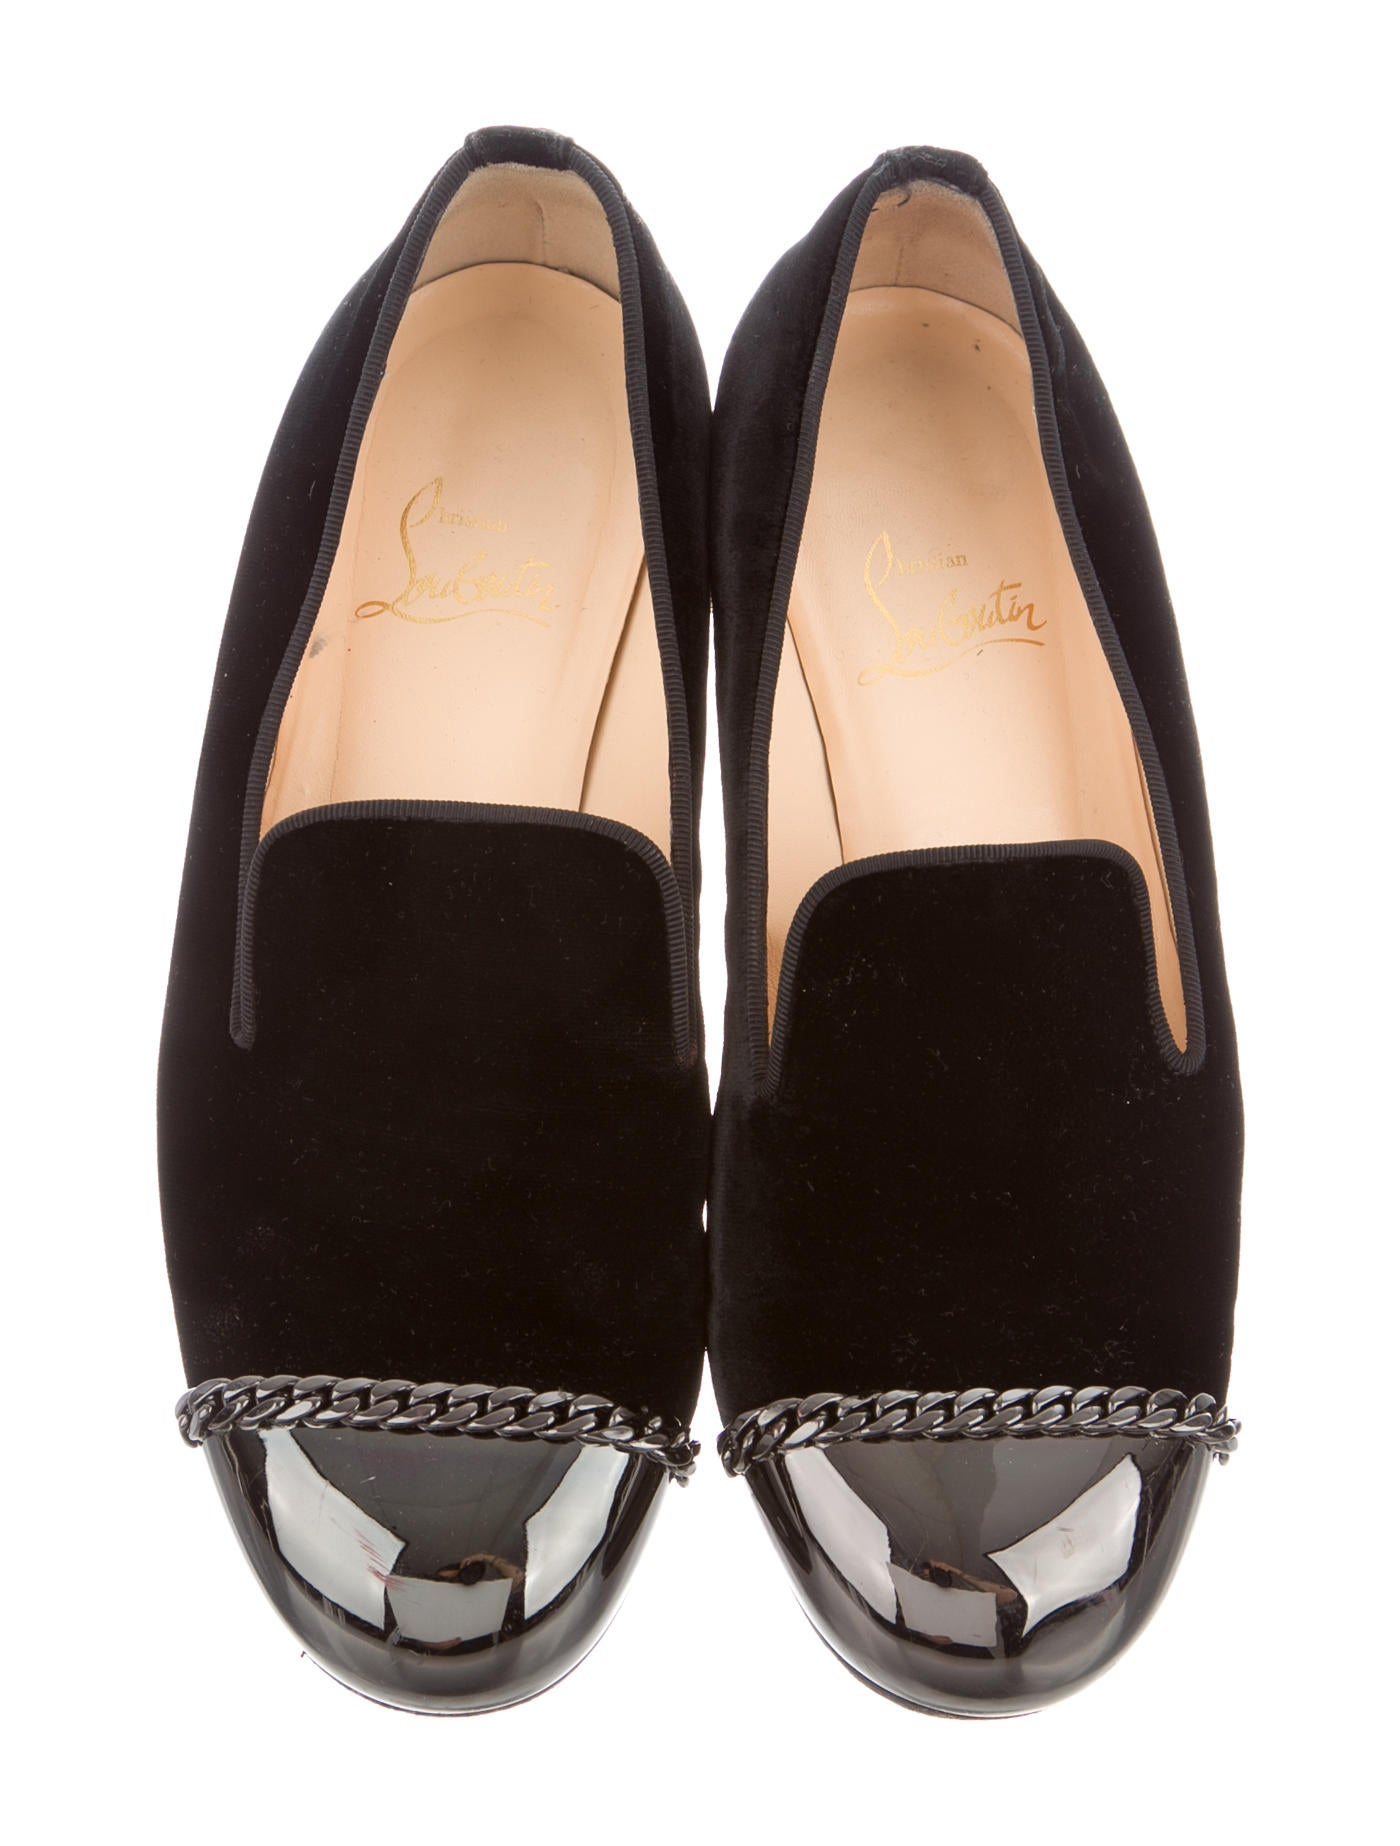 christian louboutin shoes on sale - christian louboutin velvet cap-toe intern loafers, christian ...